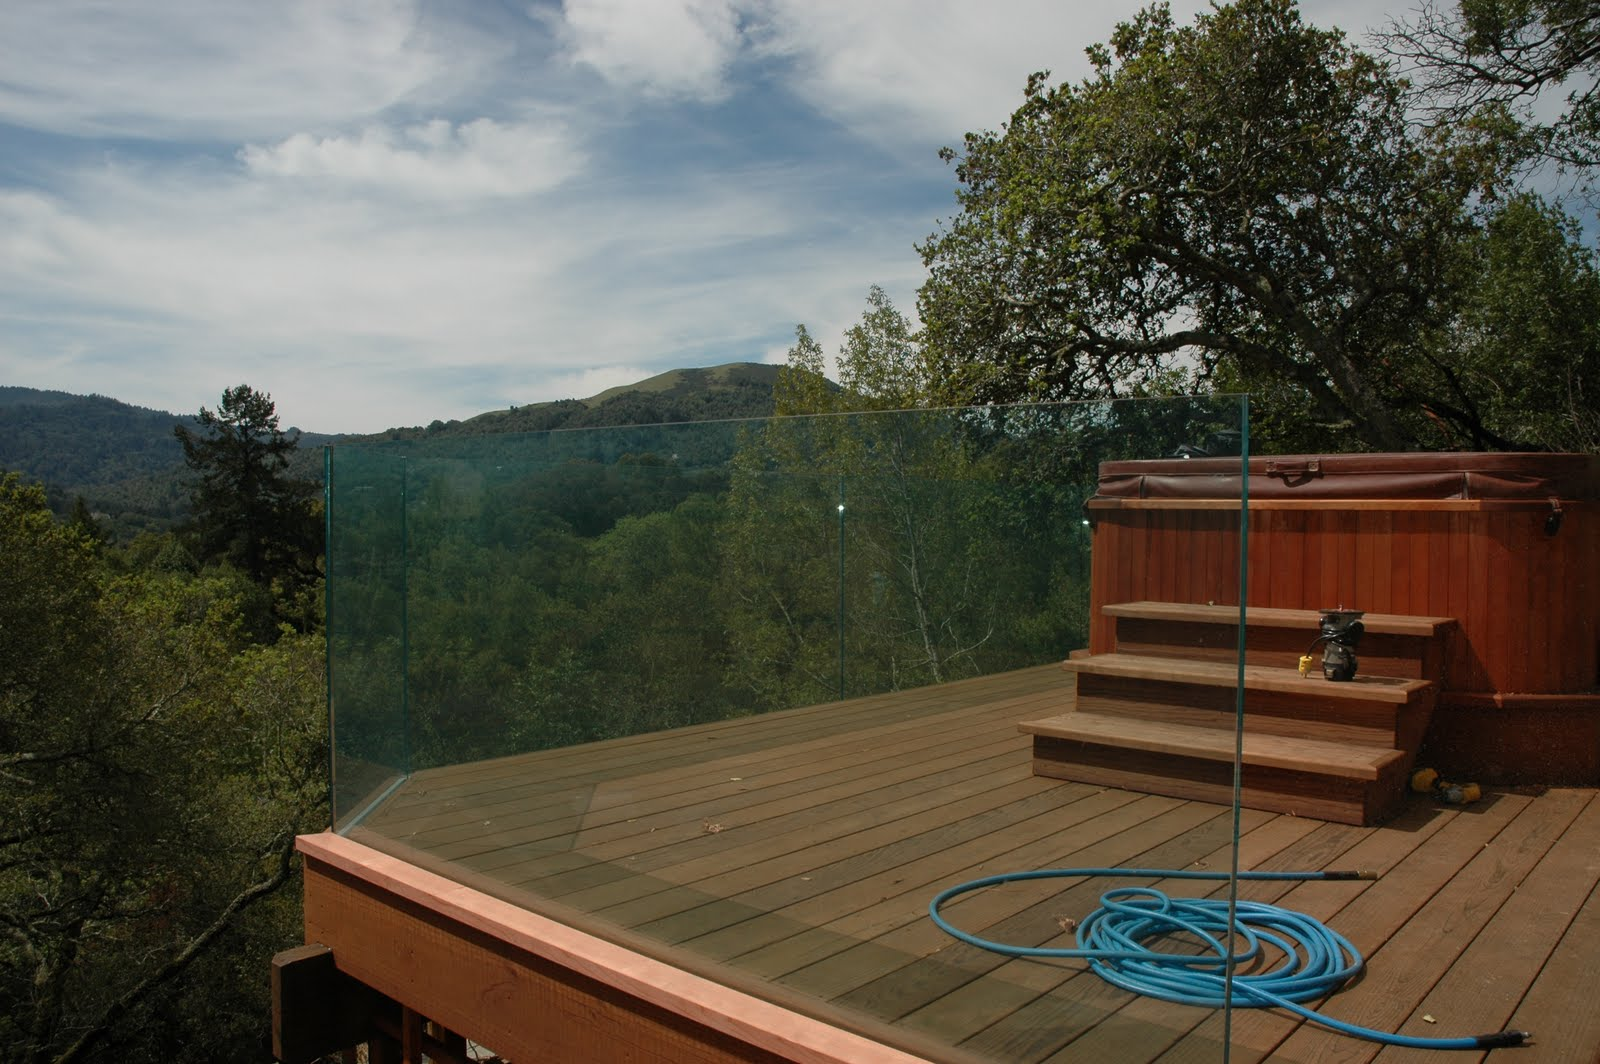 3/4″ Deck Railing Glass System with Dupont Sentry ...